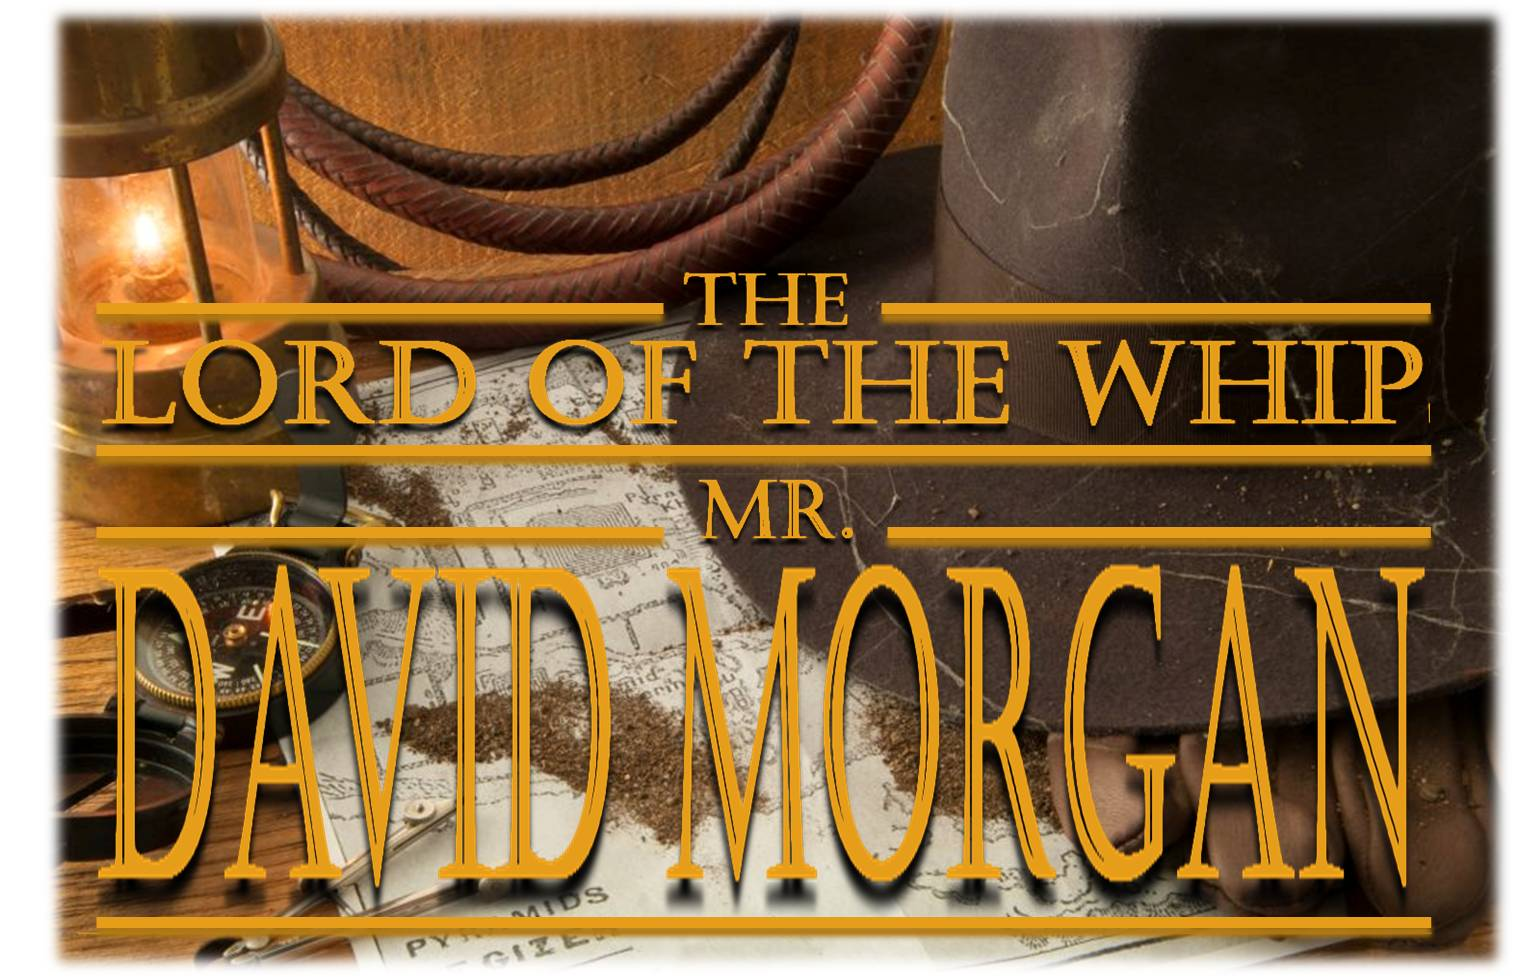 The Lord of The Whip: Mr. david w. morgan